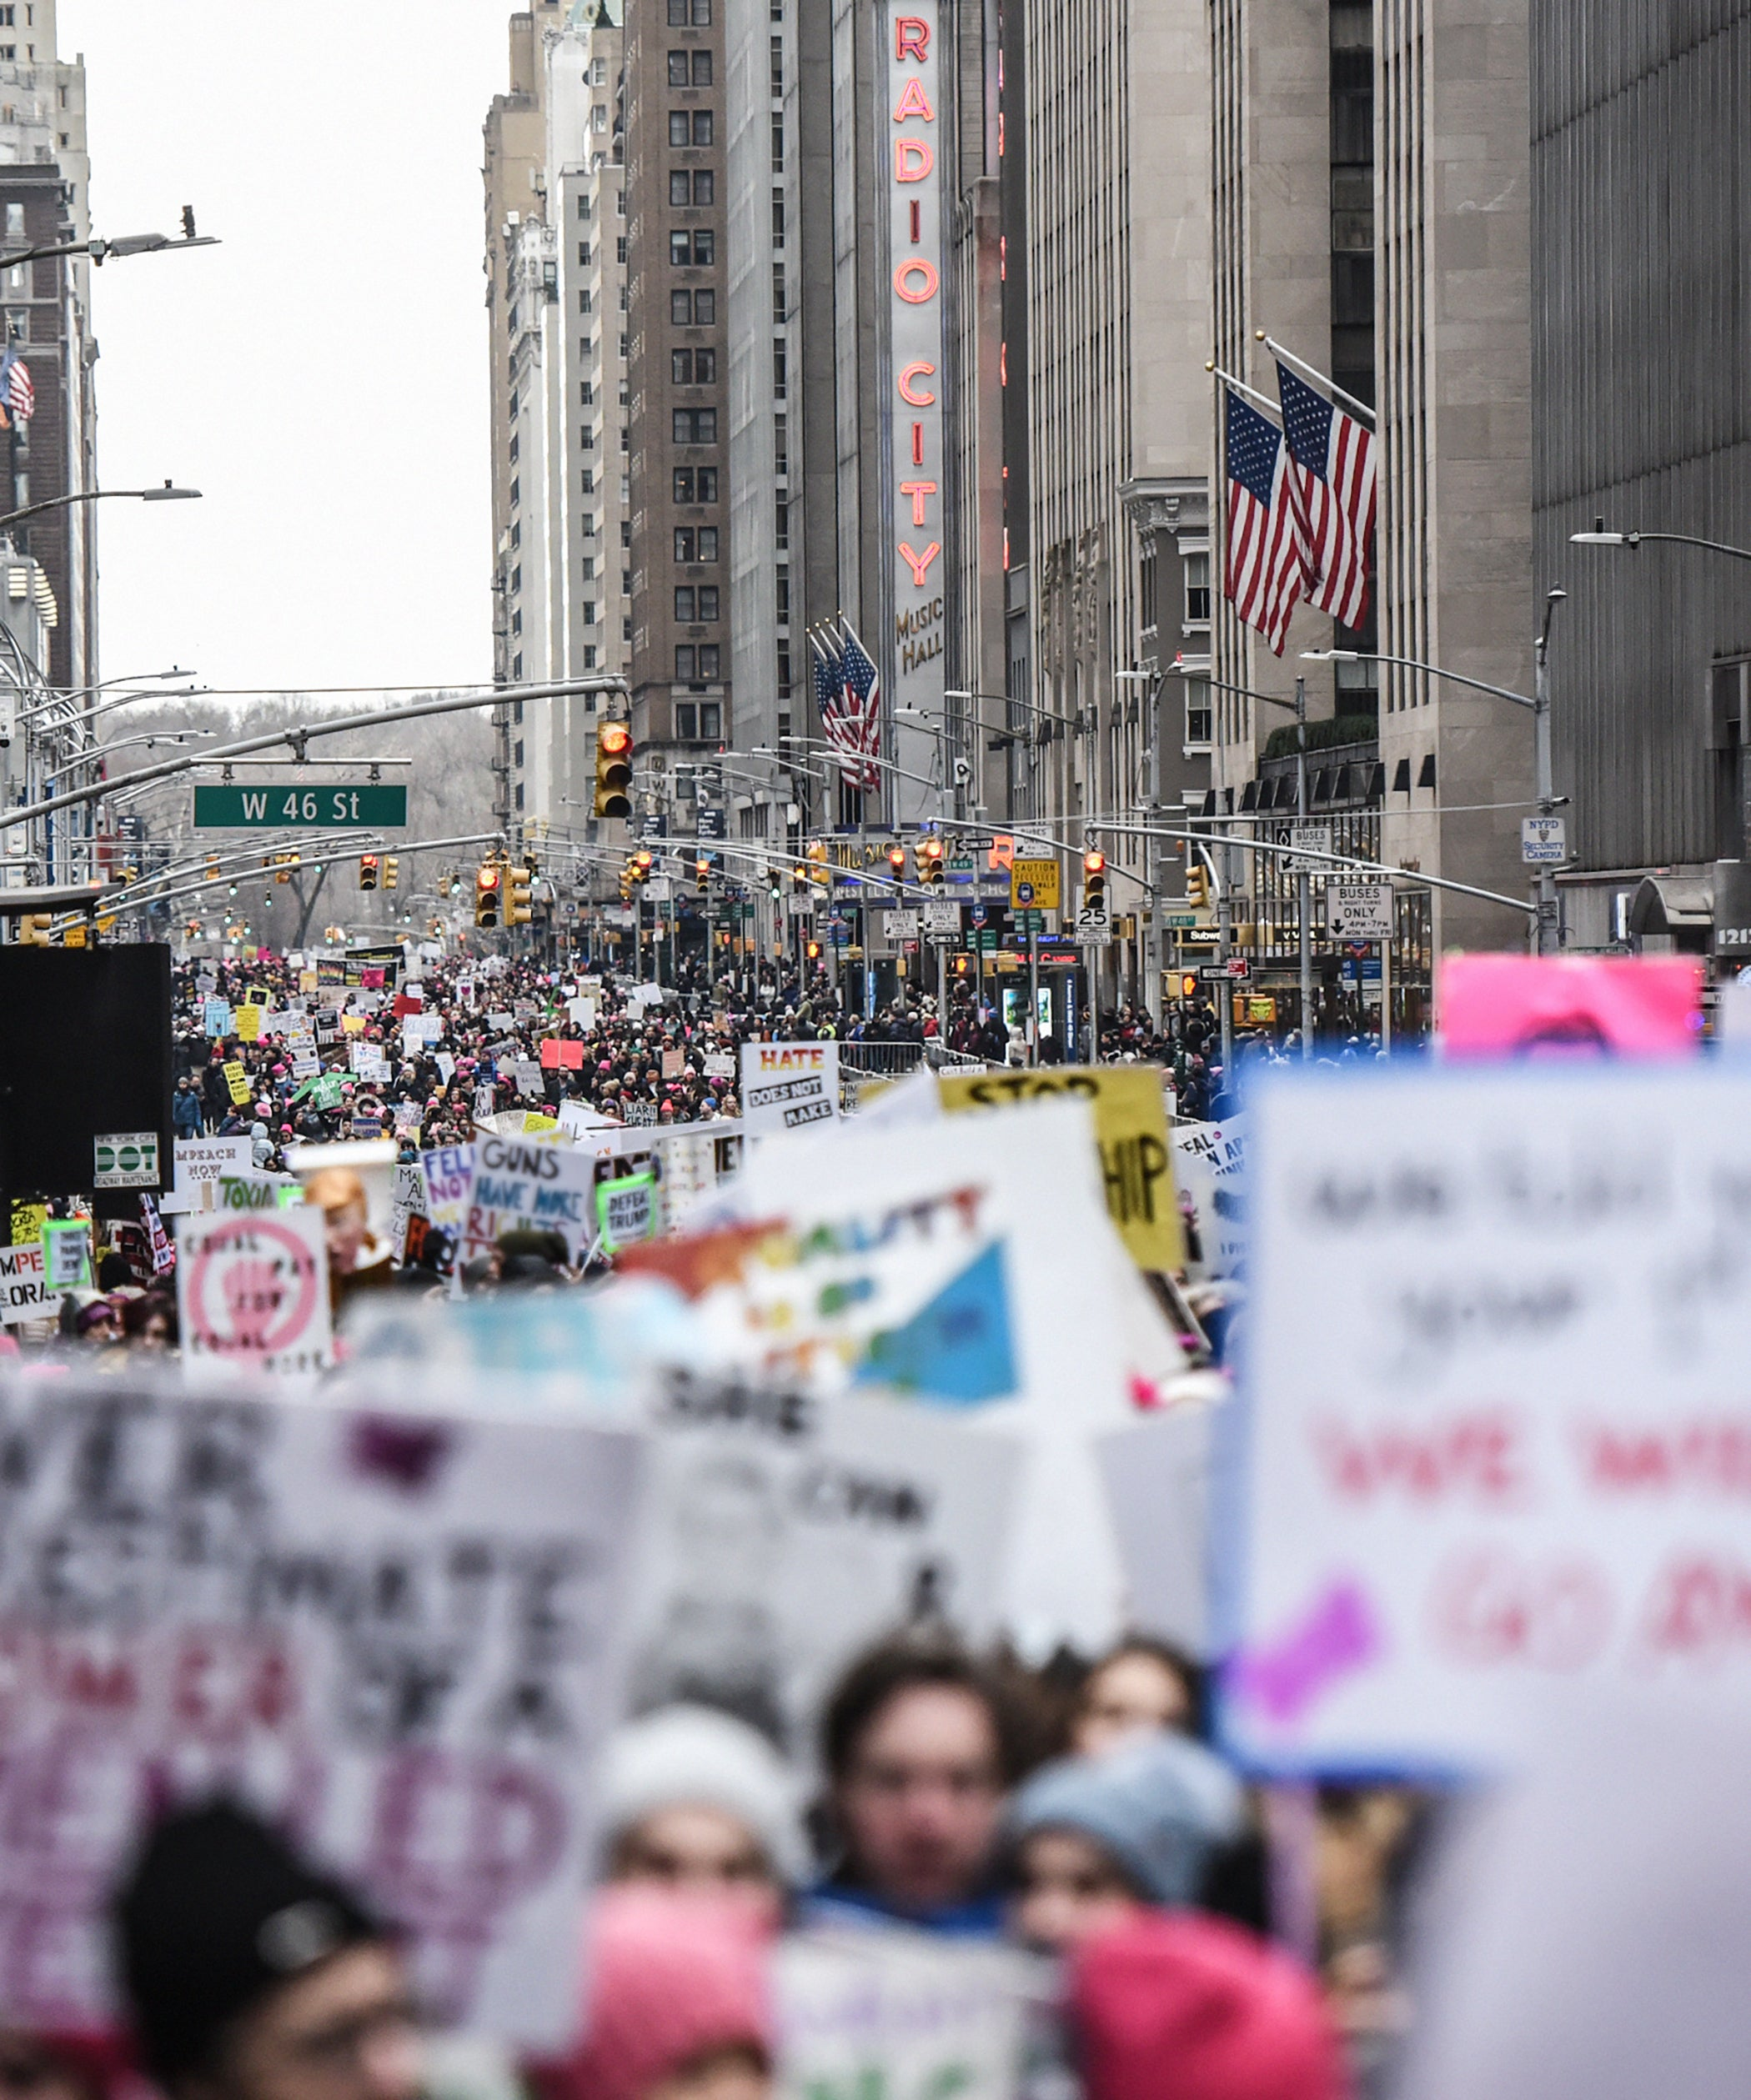 Inspiring Instagram Captions For The Women's March